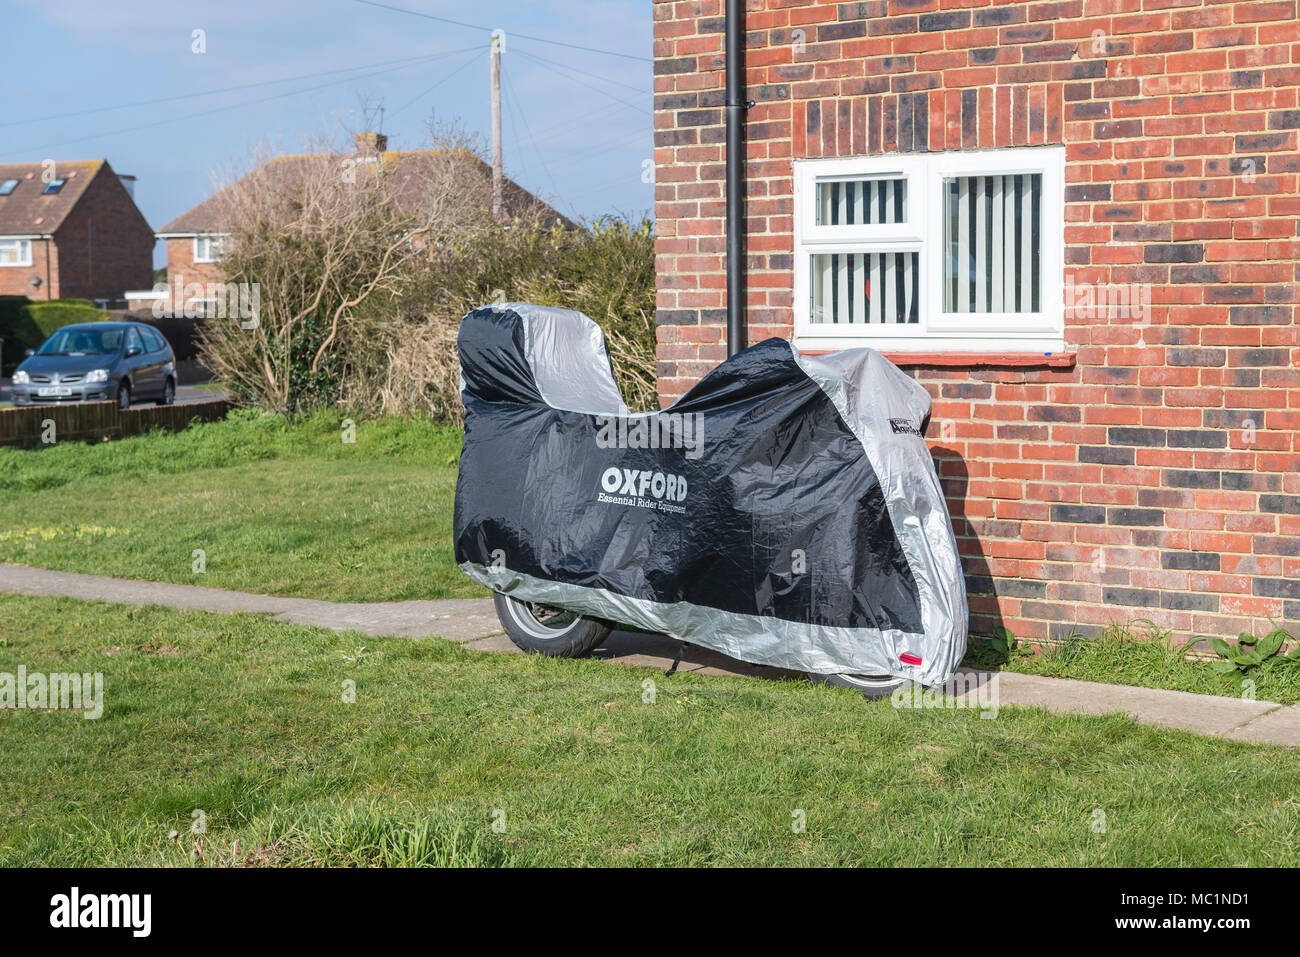 A motorcycle parked outside a house with a protective cover over it. Covered motorbike. - Stock Image